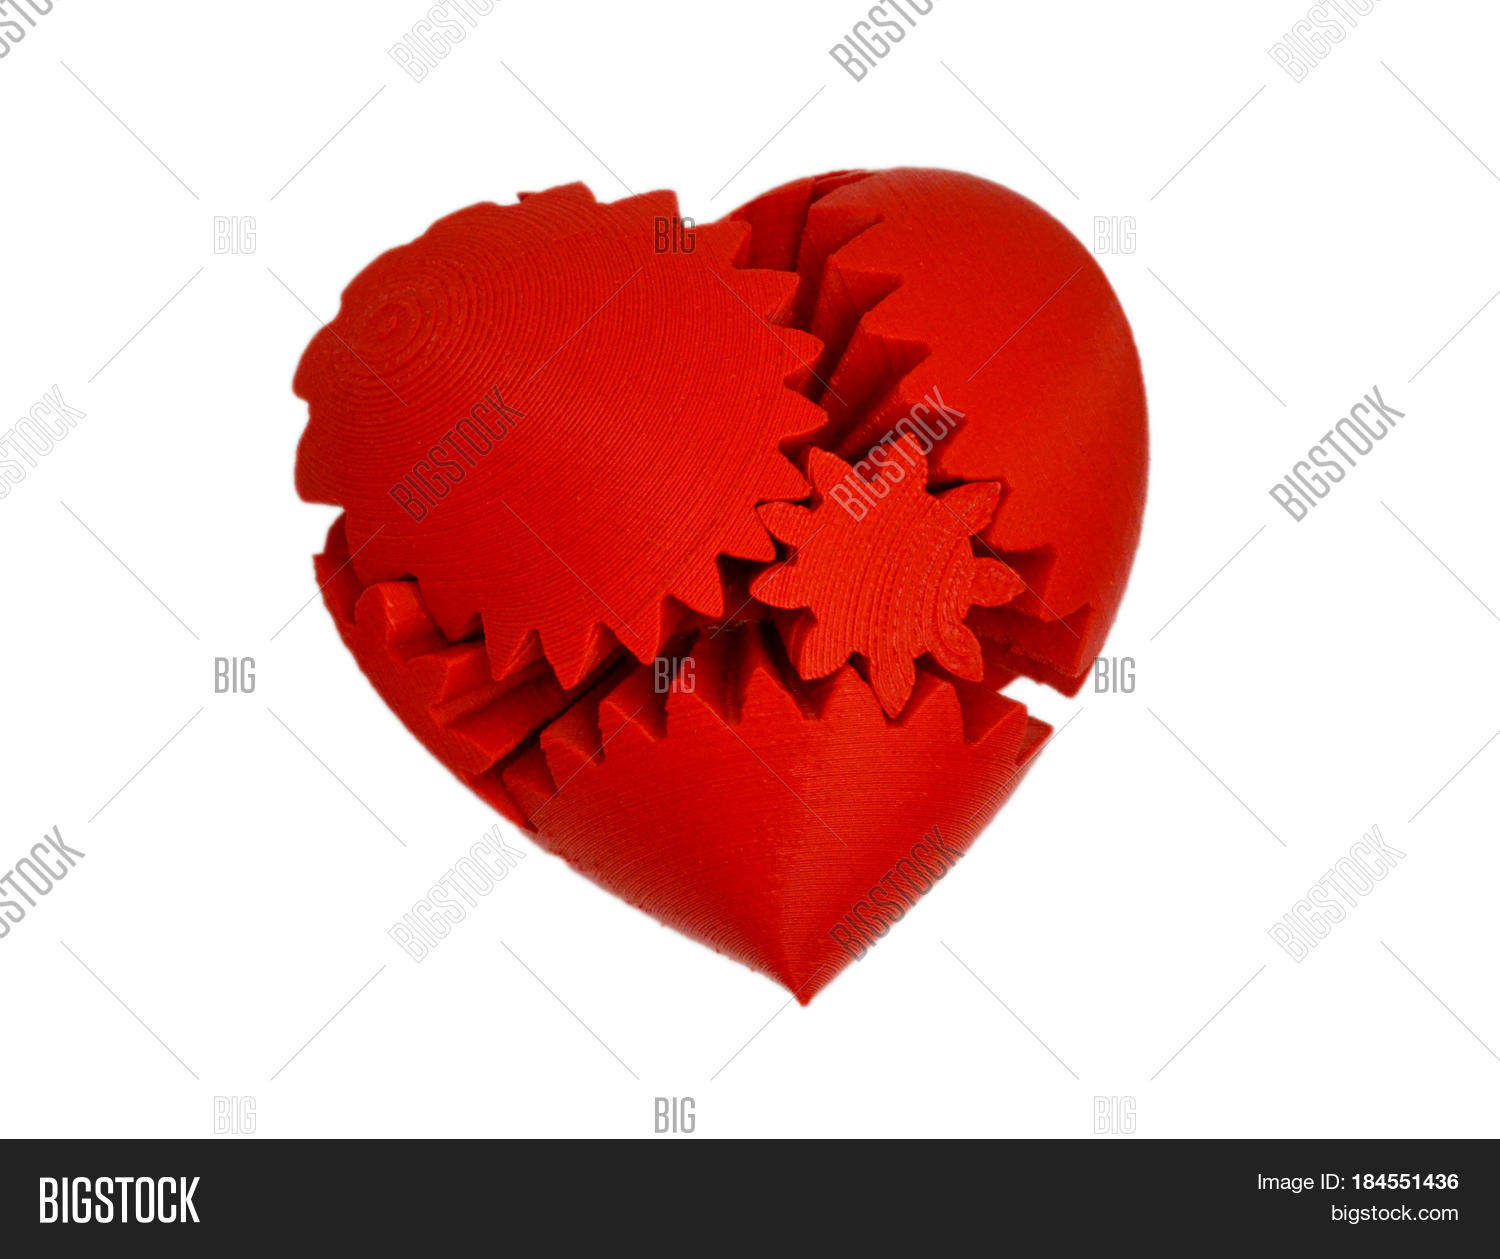 Objects Printed By 3d Printer Isolated On White Background Bright Colorful Object Heart Of